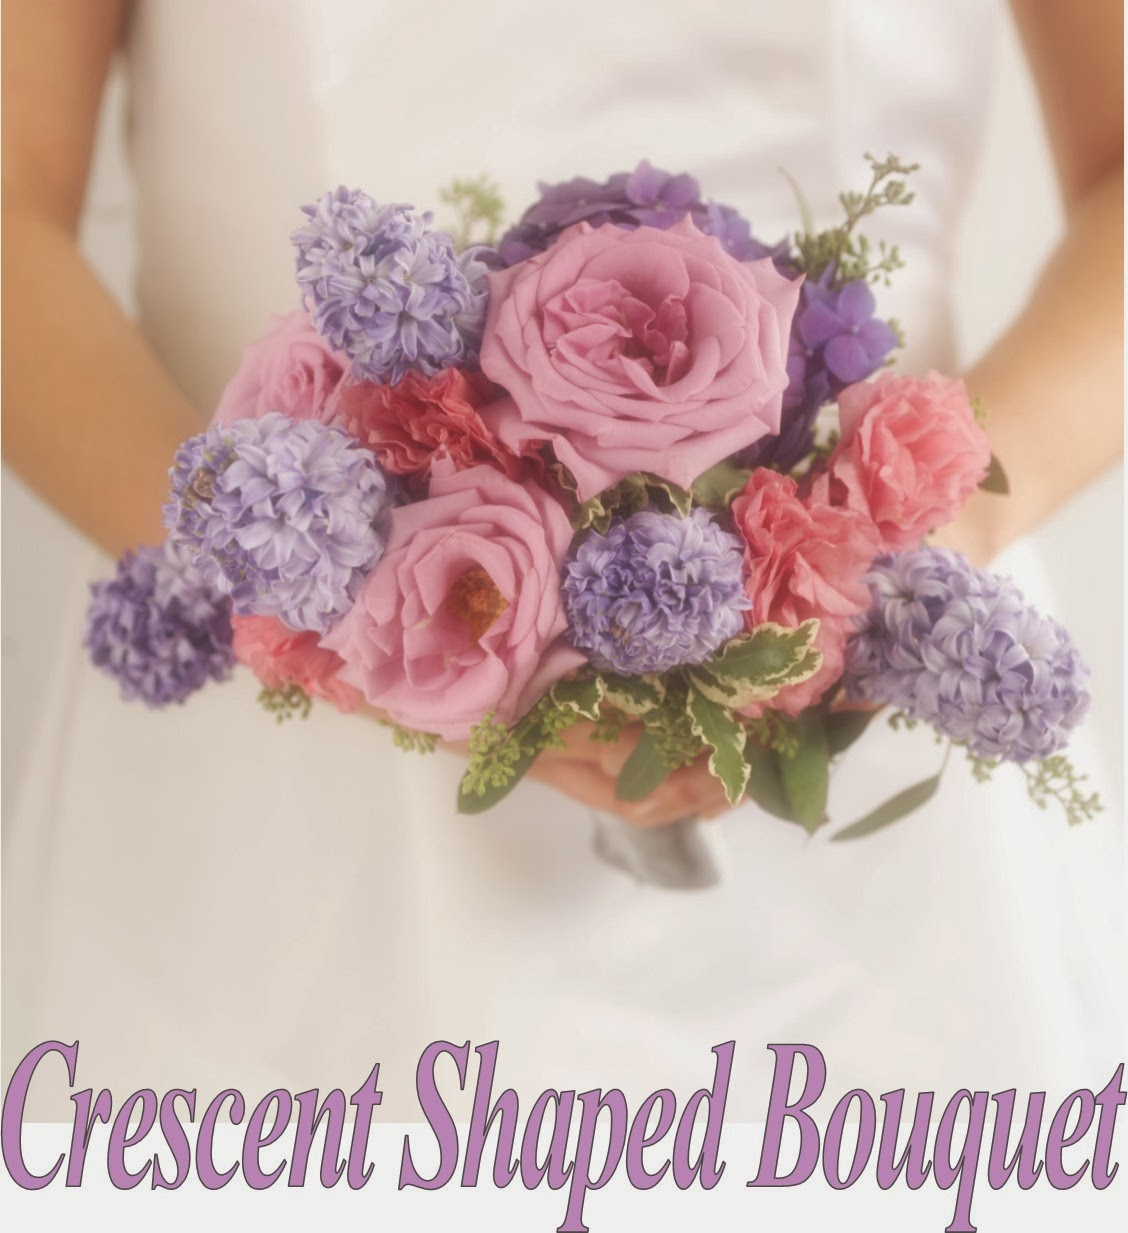 Live love breathe weddings a little bridal bouquet history bouquets draw on their fresh picked look cascading bouquets are created into a bouquet holder and can either cascade down or into a crescent shape izmirmasajfo